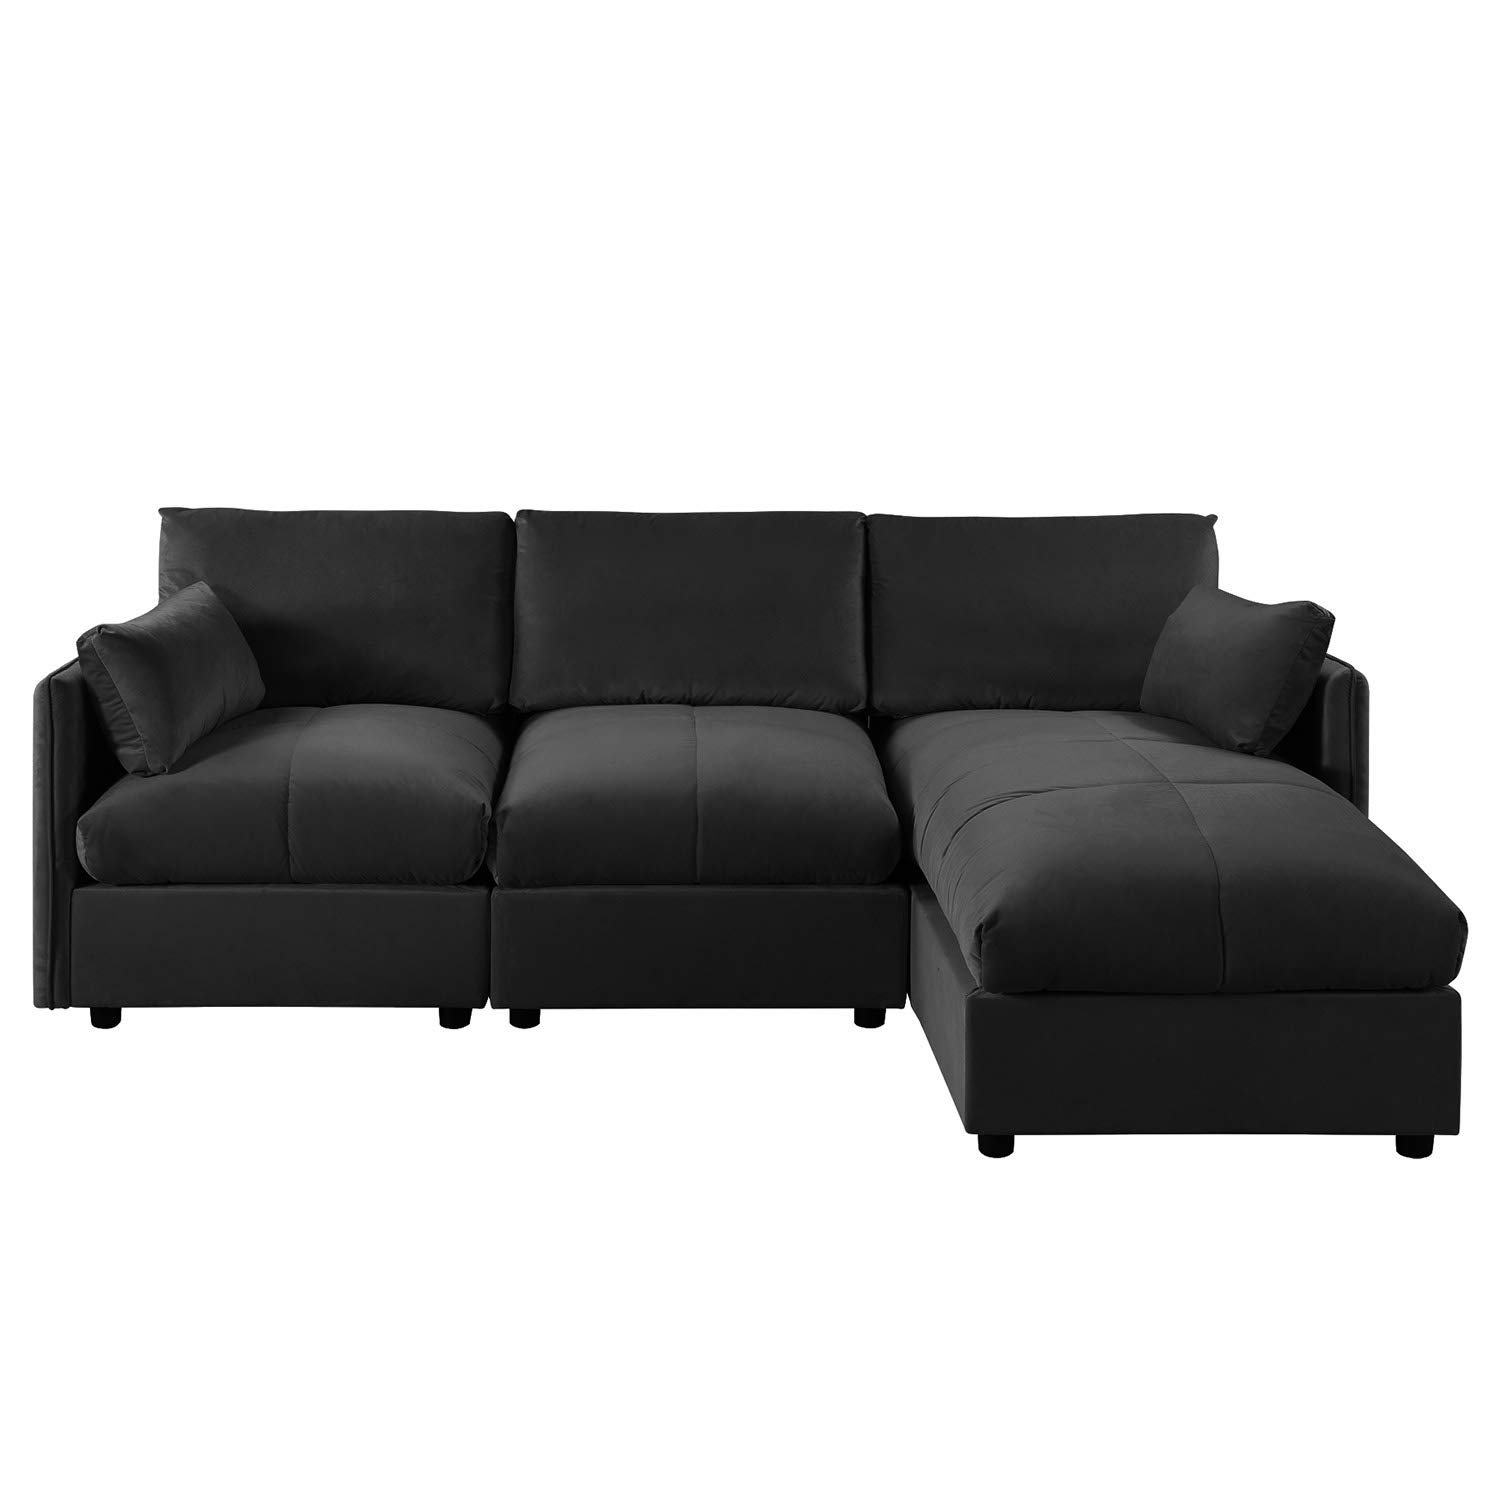 Surprising Details About Black Modern Sectional Living Room Velvet L Shape Couch Sofa Right Facing Chaise Inzonedesignstudio Interior Chair Design Inzonedesignstudiocom